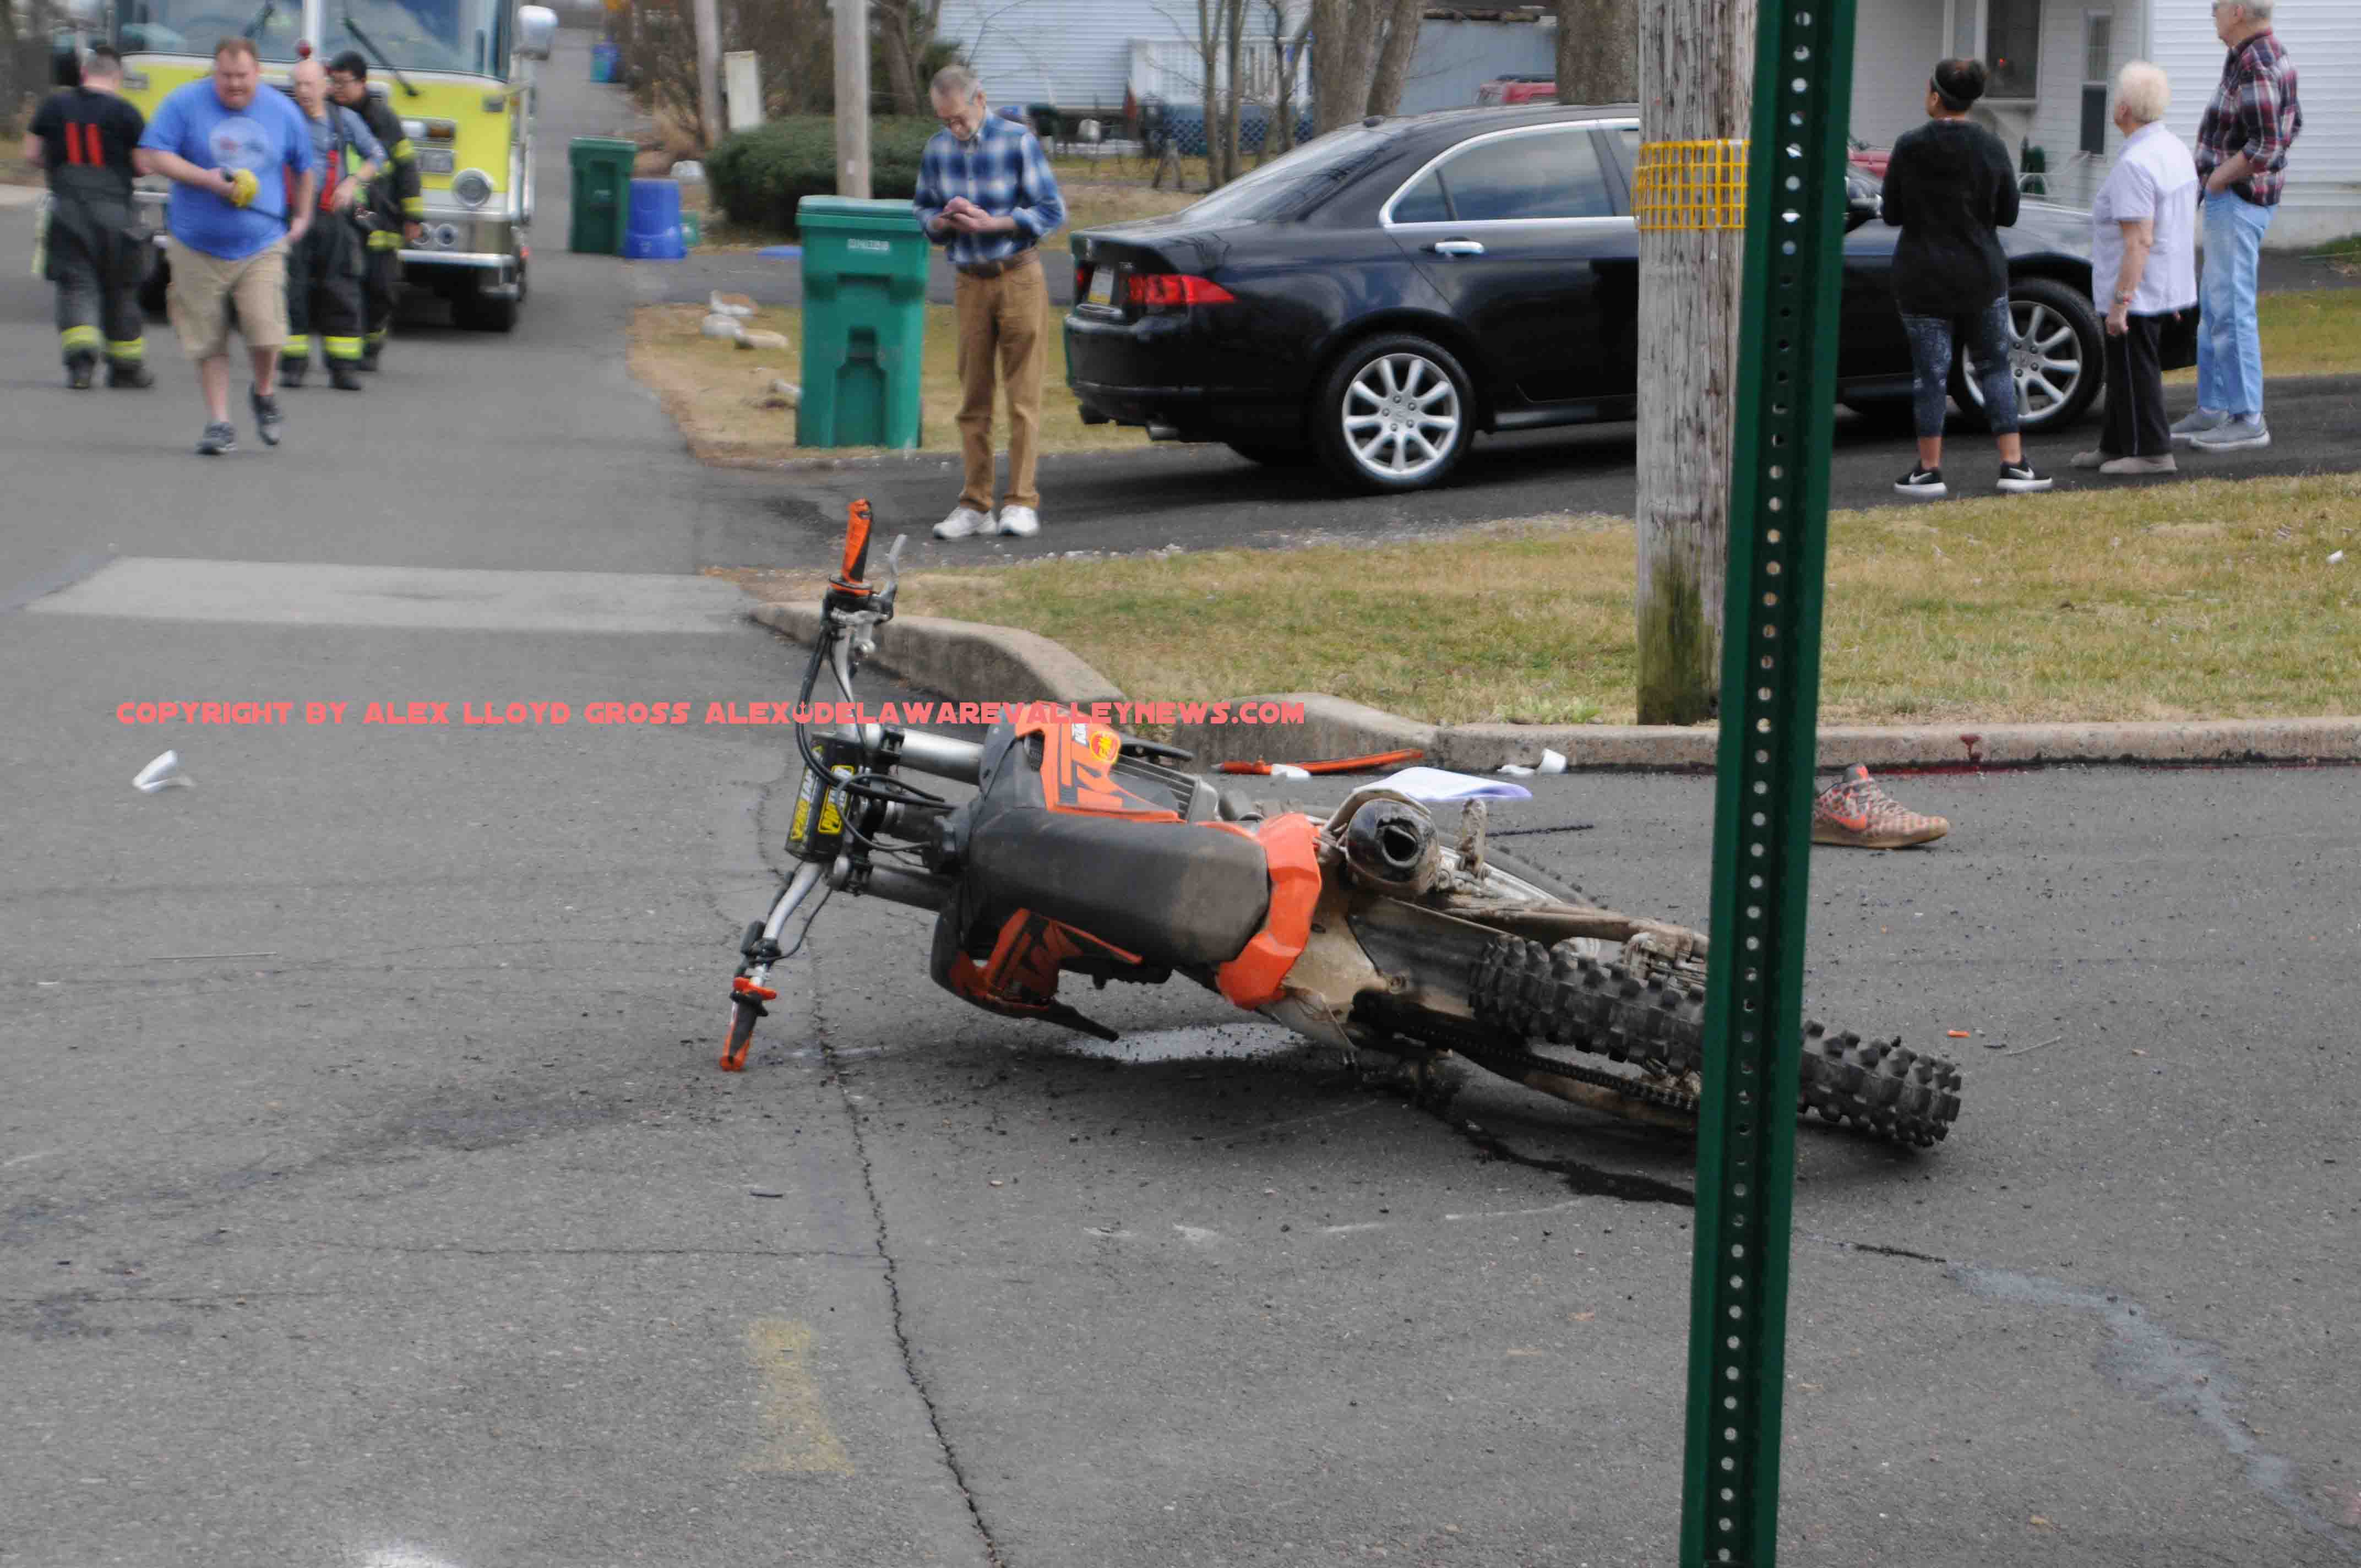 Two critically hurt in Bensalem motorcycle crash | Delaware